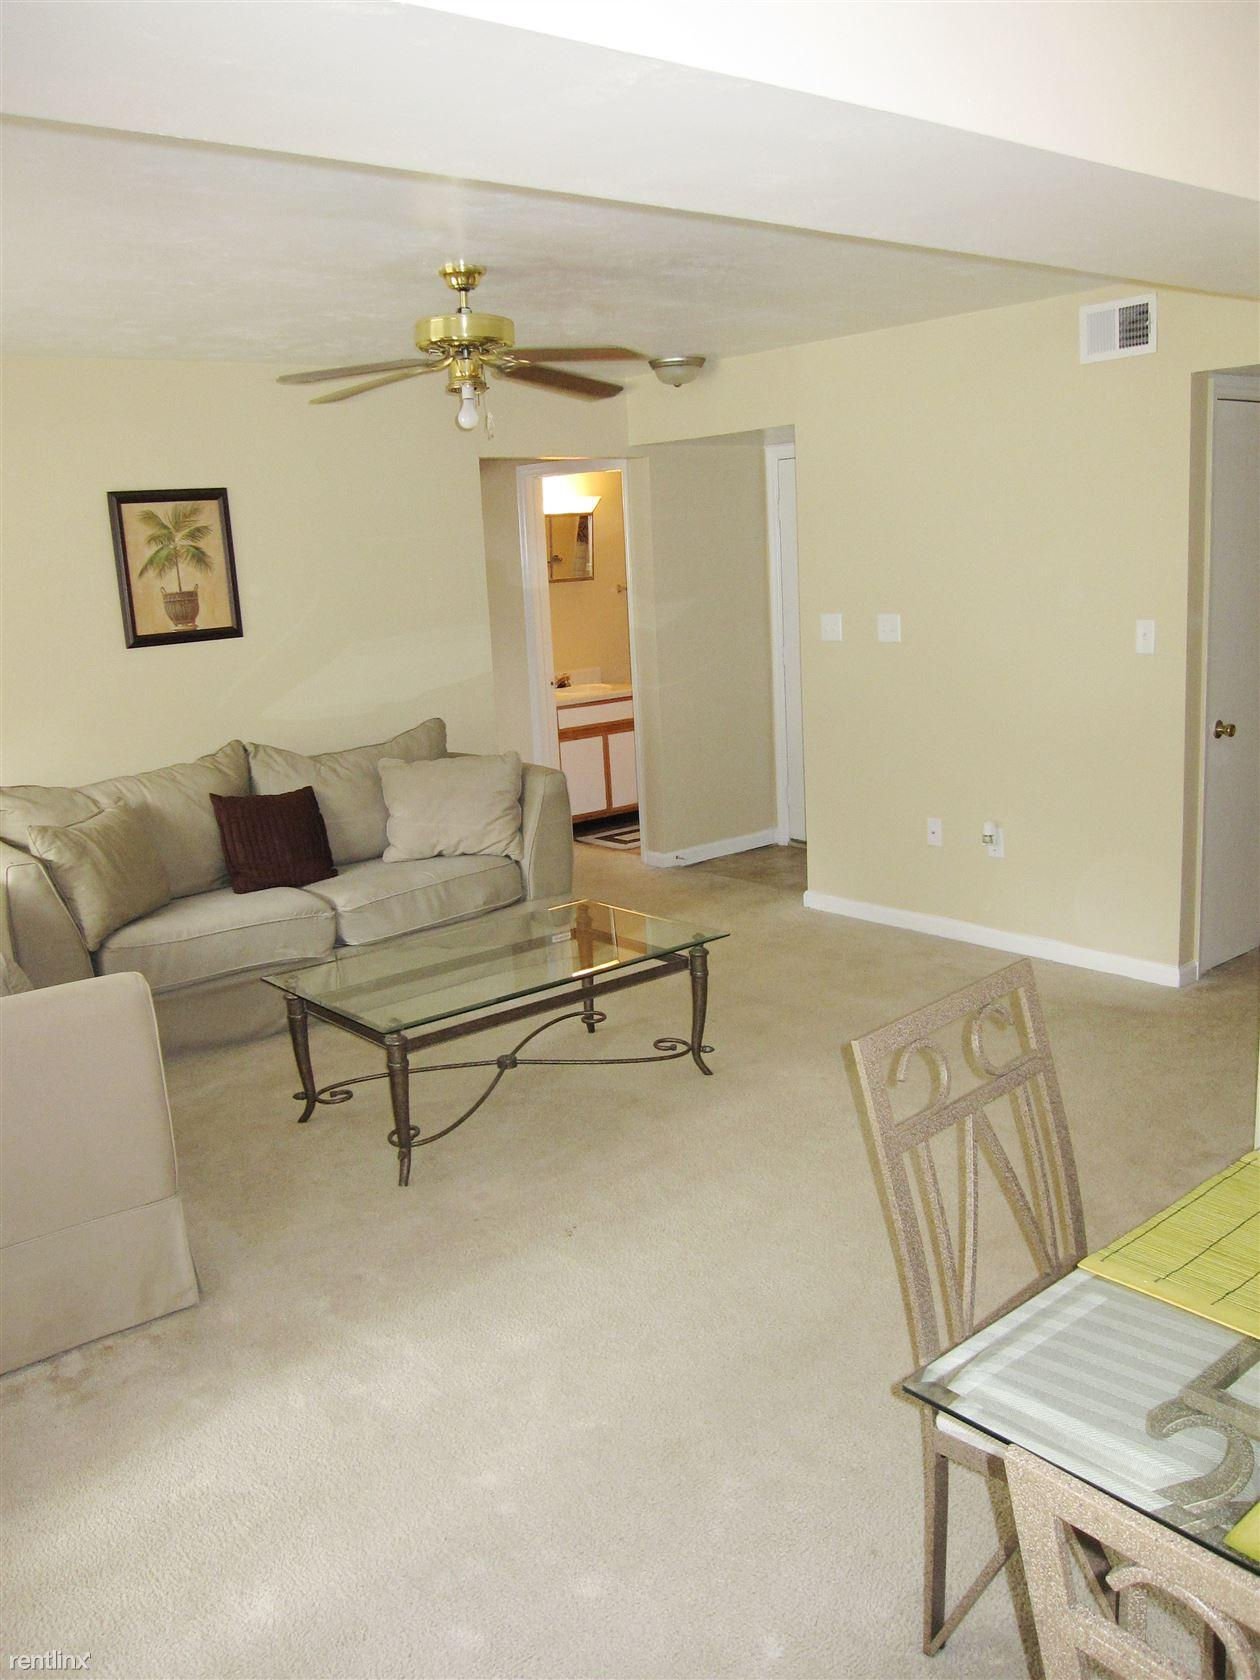 bcgf ec tips for tallahassee florida bedroom finding one apartments blog